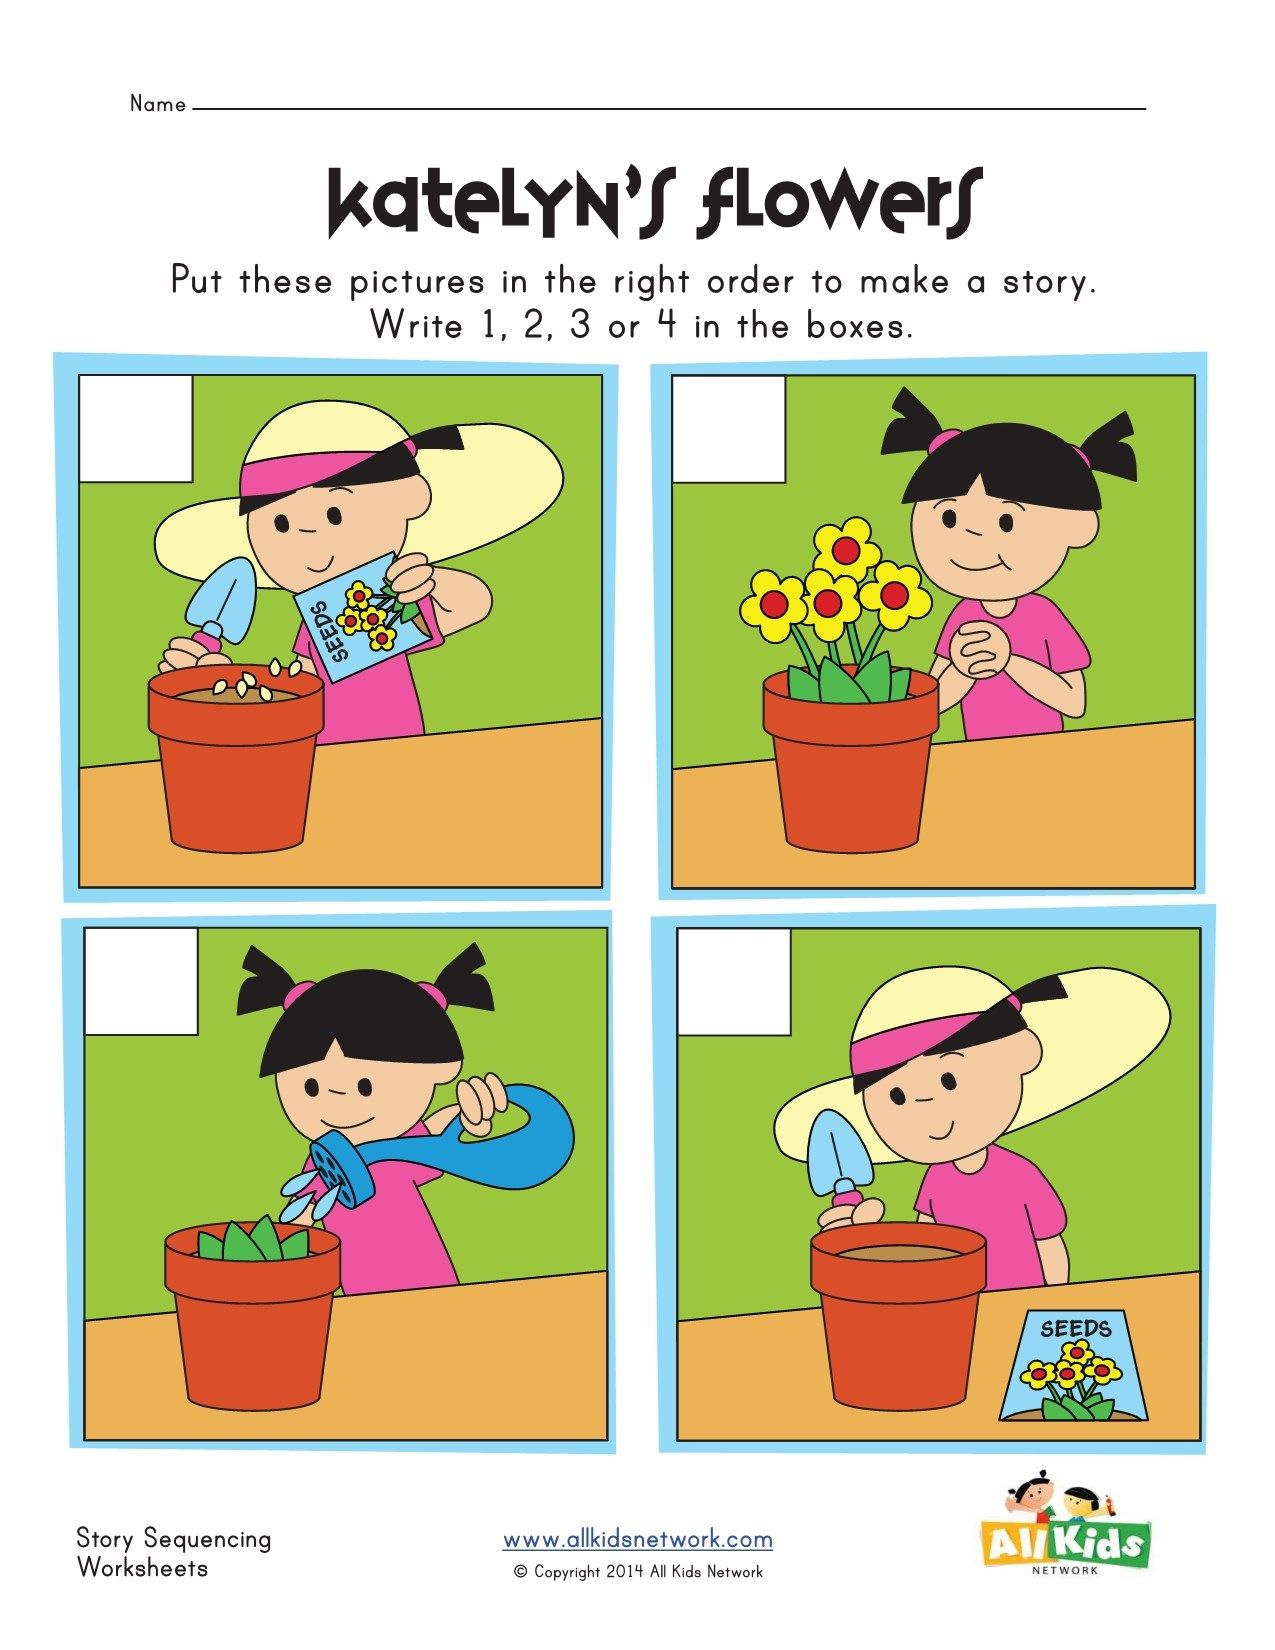 photo relating to 4 Step Sequencing Pictures Printable titled sequencing worksheet - planting bouquets Eseményképek